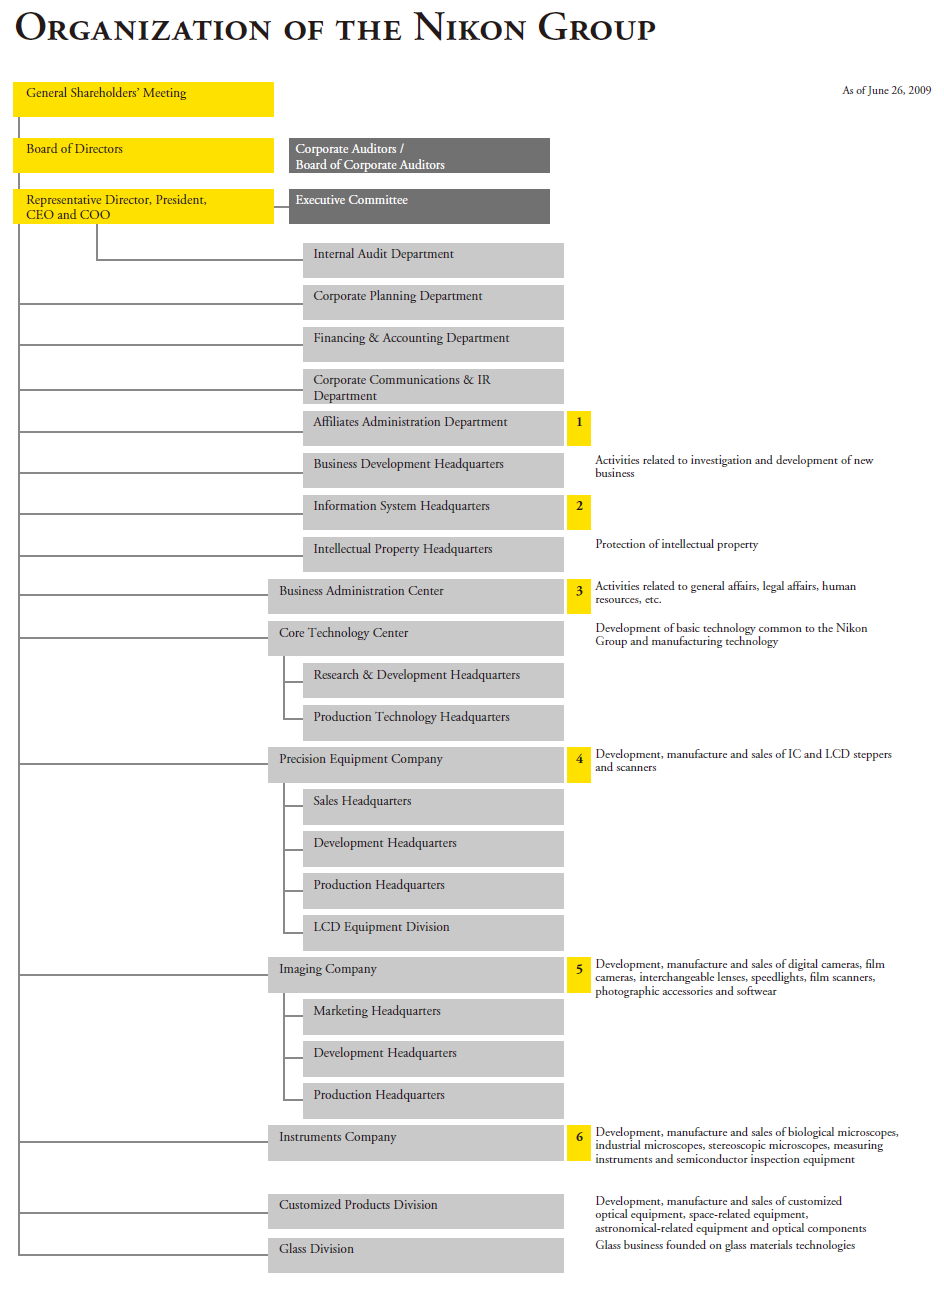 Visible Business Organizational Structure Of Nikon Group